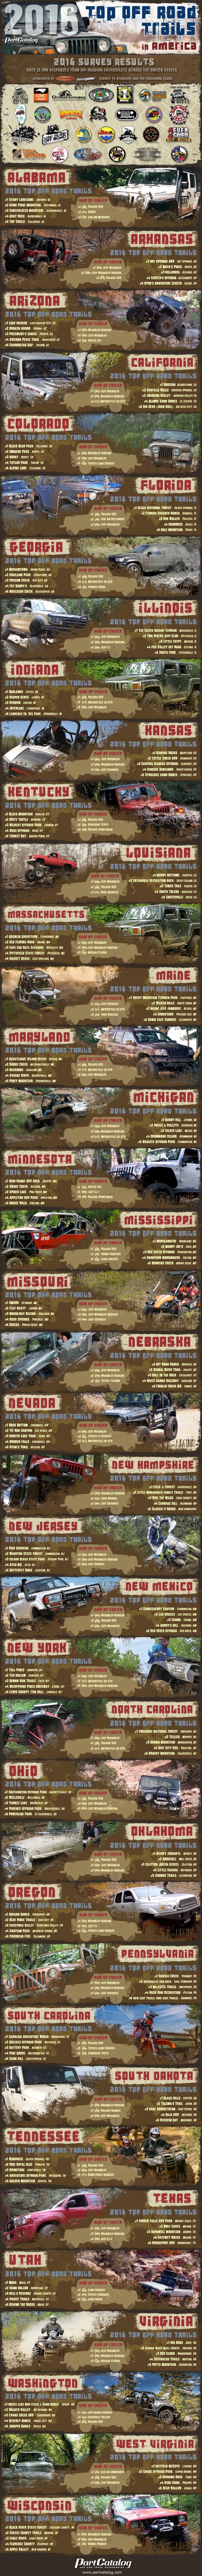 2016 Top Off Road Trails & Parks in America